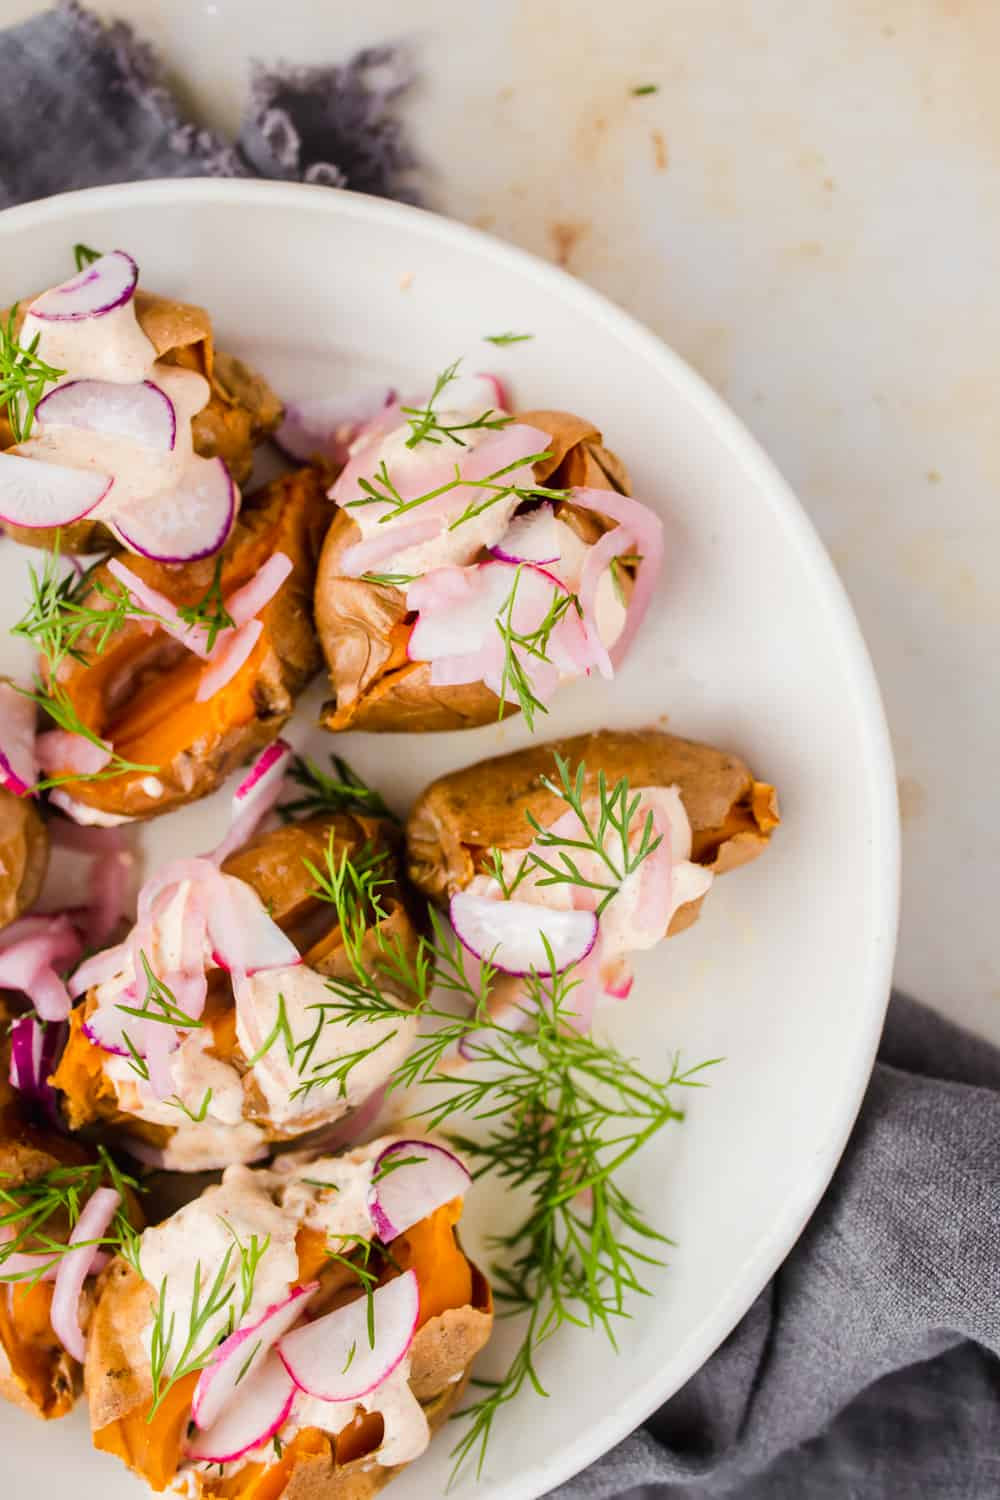 Closeup of Loaded Air Fryer Baked Sweet Potatoes on a white plate with fresh herbs and creamy yogurt sauce.